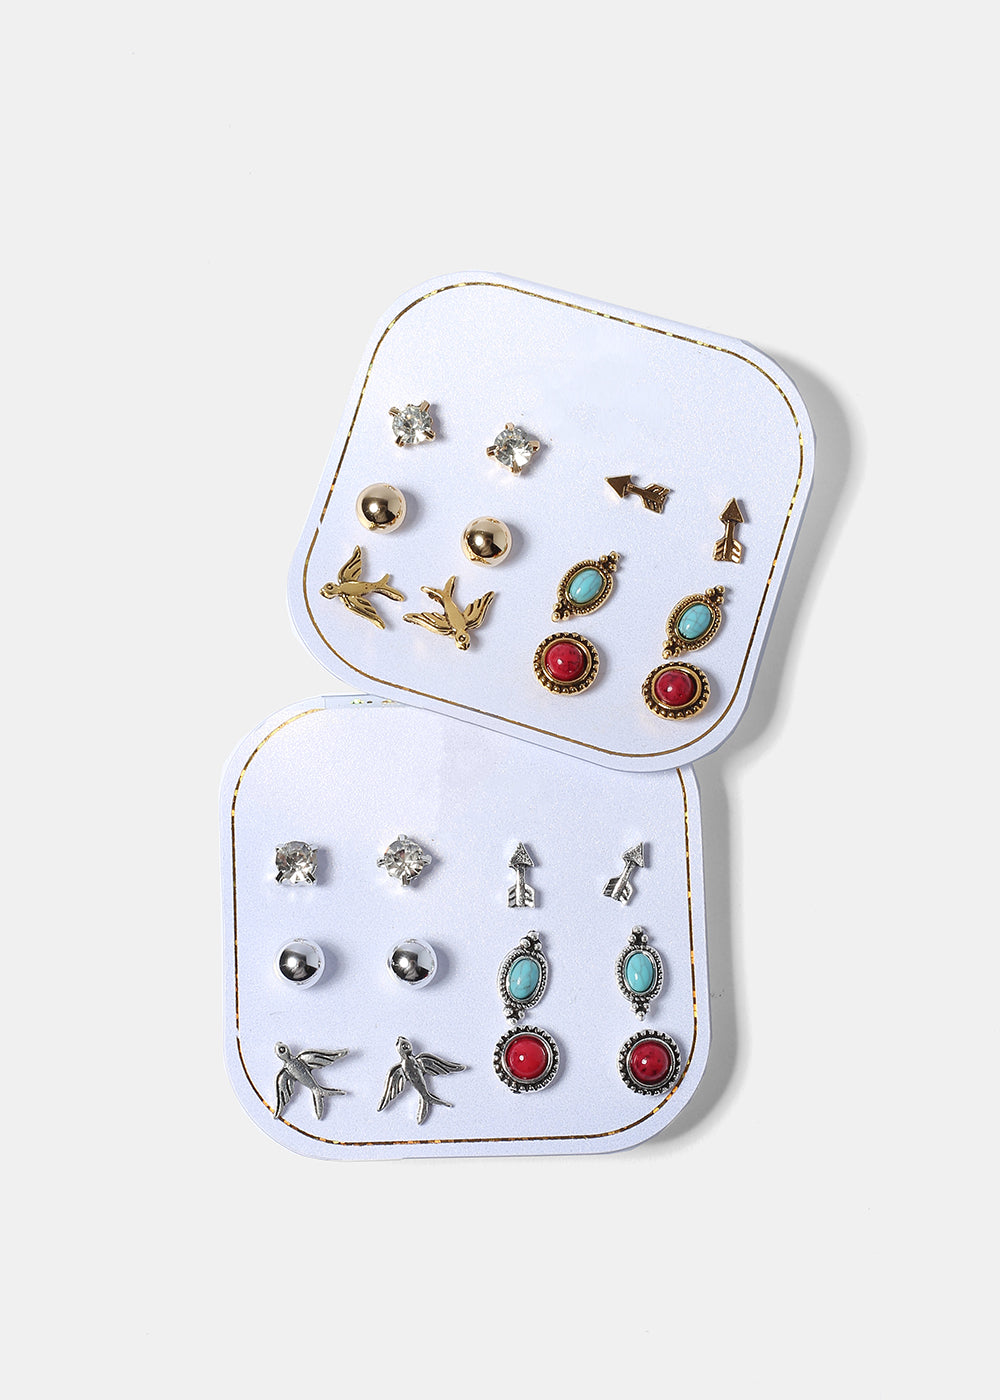 6 Pair Bird & Arrow Earring Set